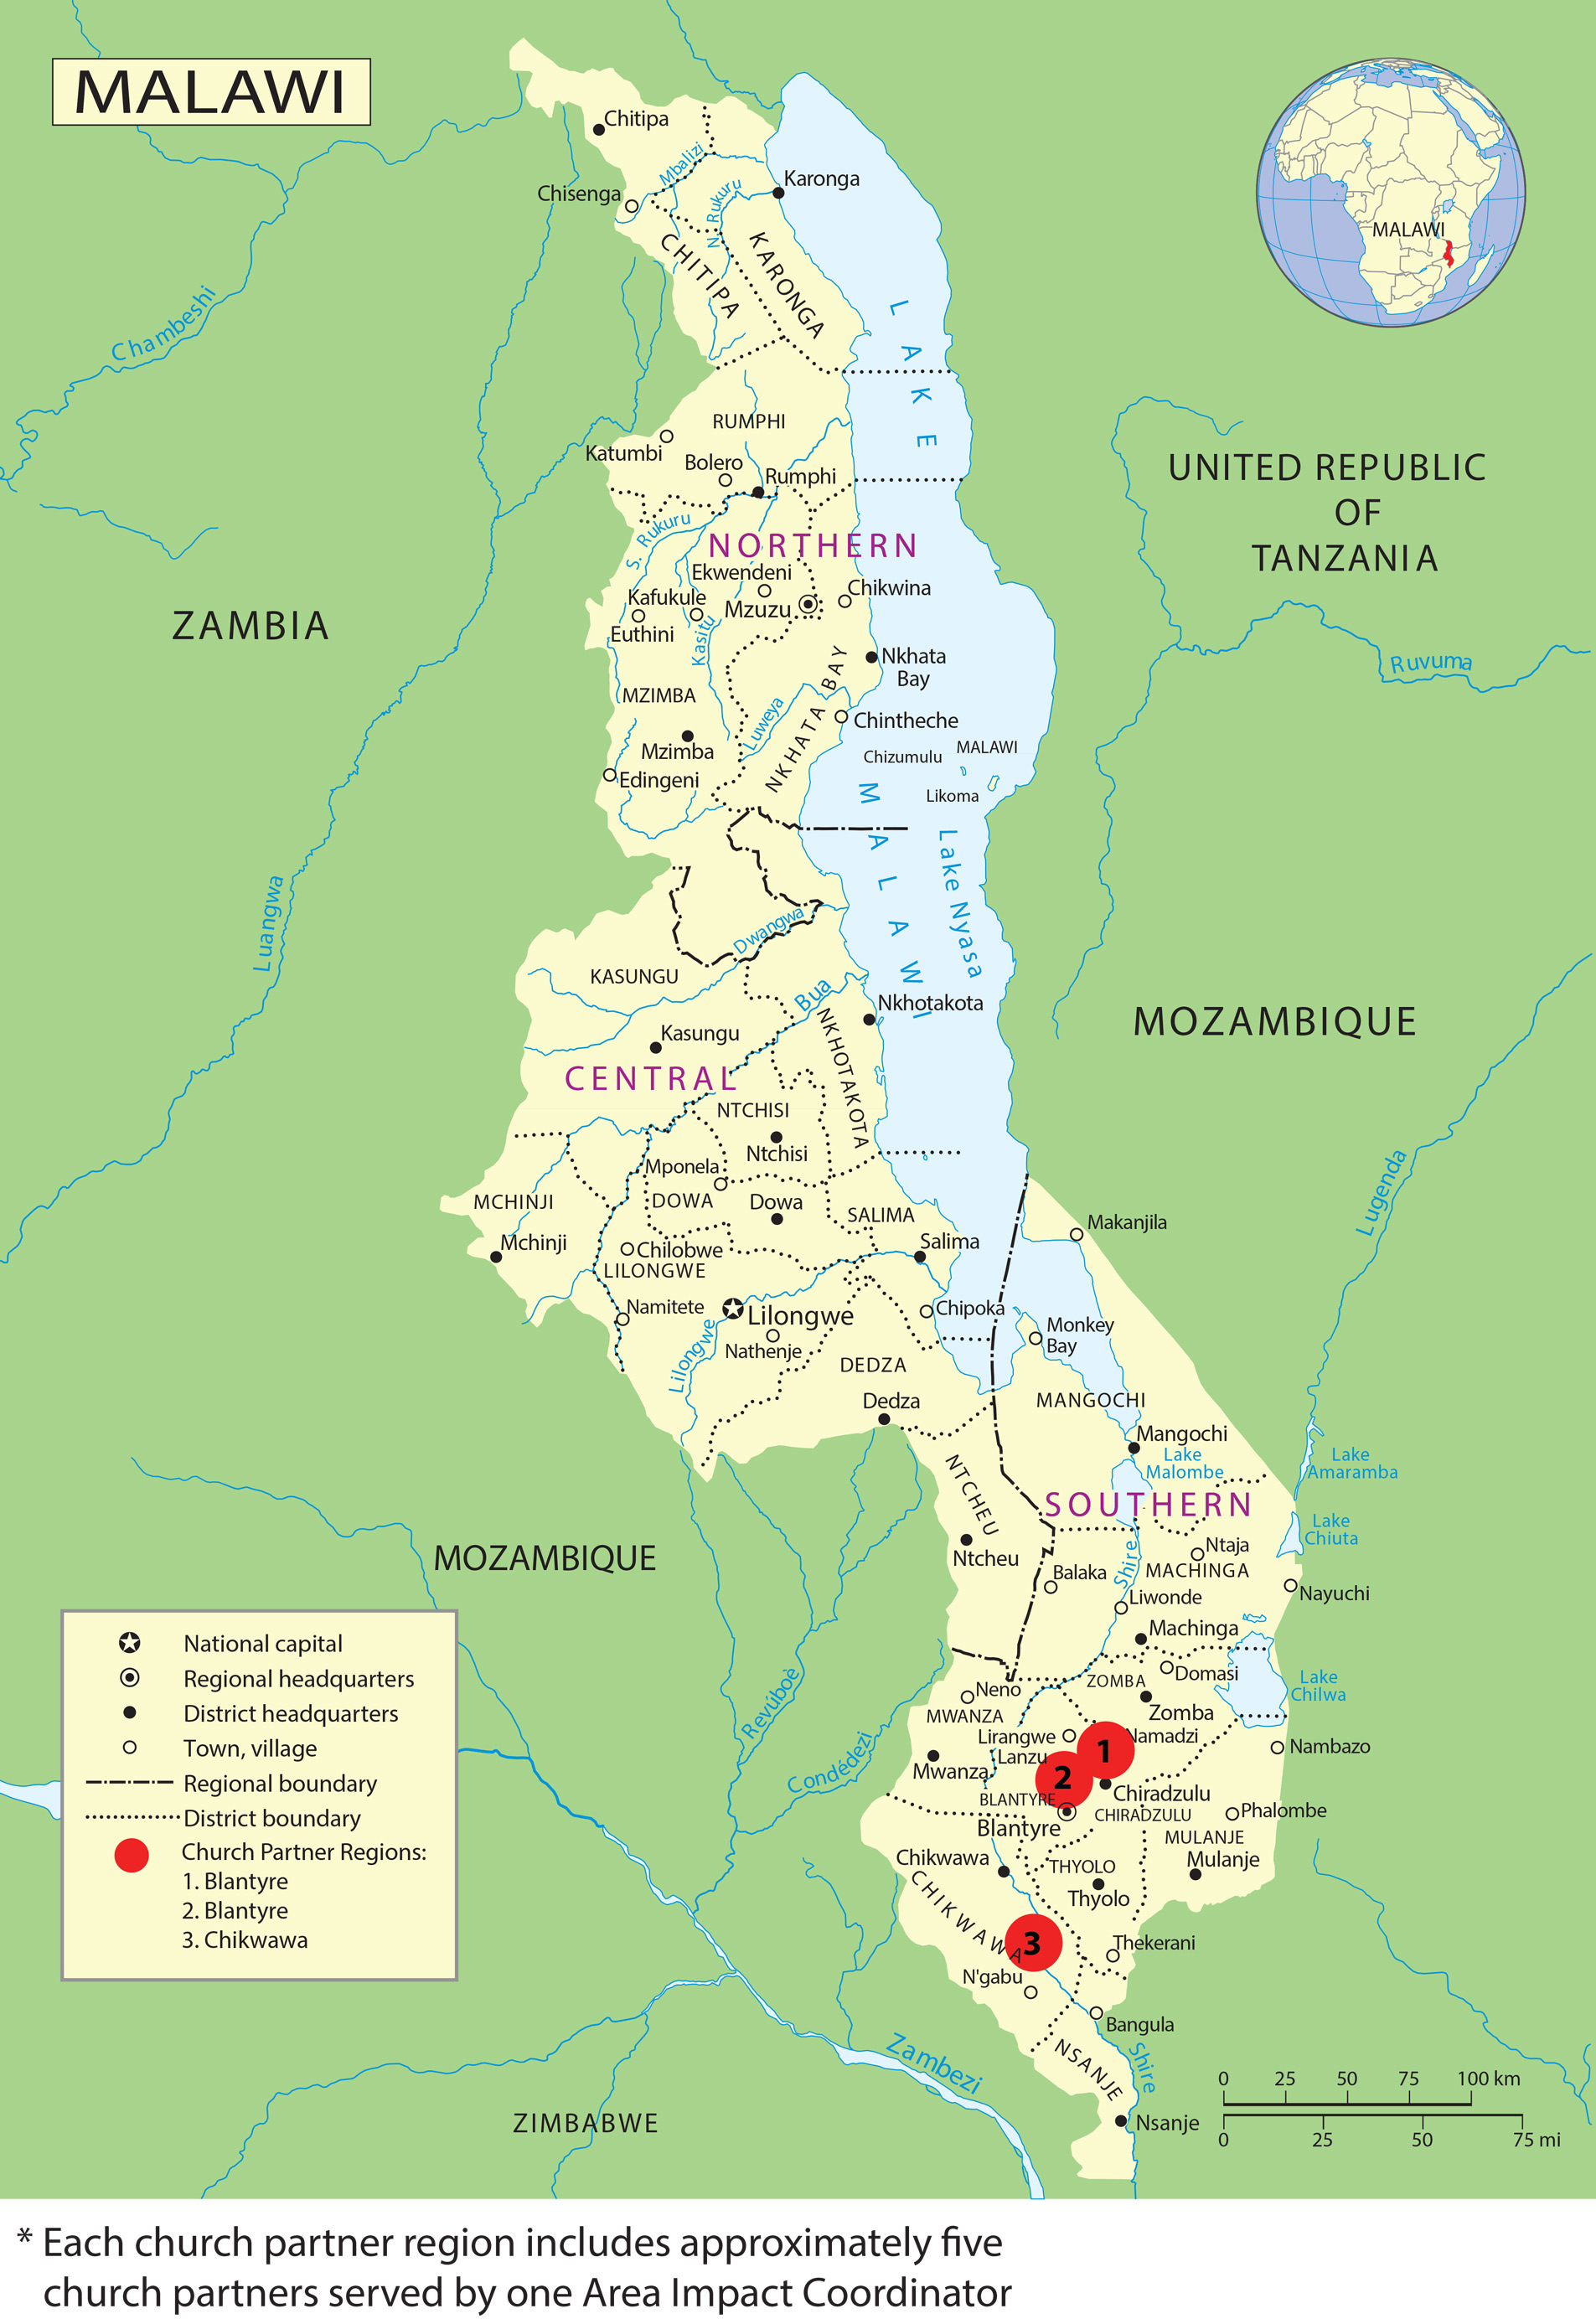 Malawi - Forgotten Voices on mozambique map, cameroon map, mauritius map, libya map, senegal map, kenya map, democratic republic congo map, nigeria map, kiribati map, ethiopia map, jamaica map, algeria map, liberia map, mali map, tanzania map, madagascar map, gambia map, morocco map, niger map, tunisia map, rwanda map, macedonia map, sudan map, togo map, egypt map, ghana map, lesotho map, swaziland on map, zambia map, uganda map, zimbabwe map, africa map, namibia map, angola map, sierra leone map,